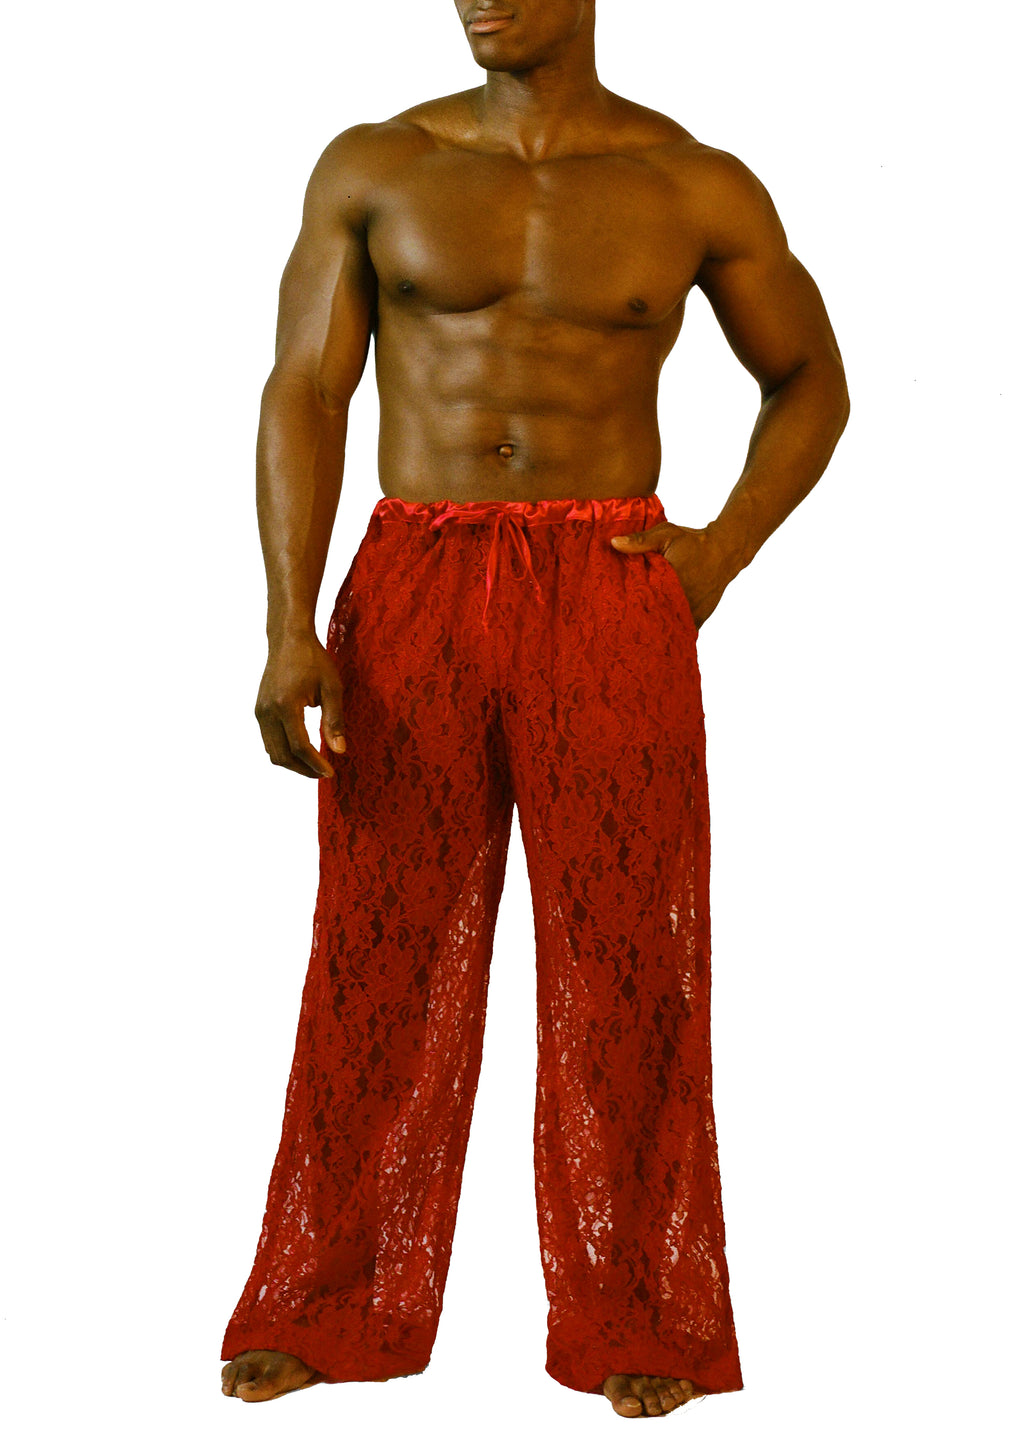 DRAWSTRING PANT in RED LACE - MENAGERIÉ Intimates